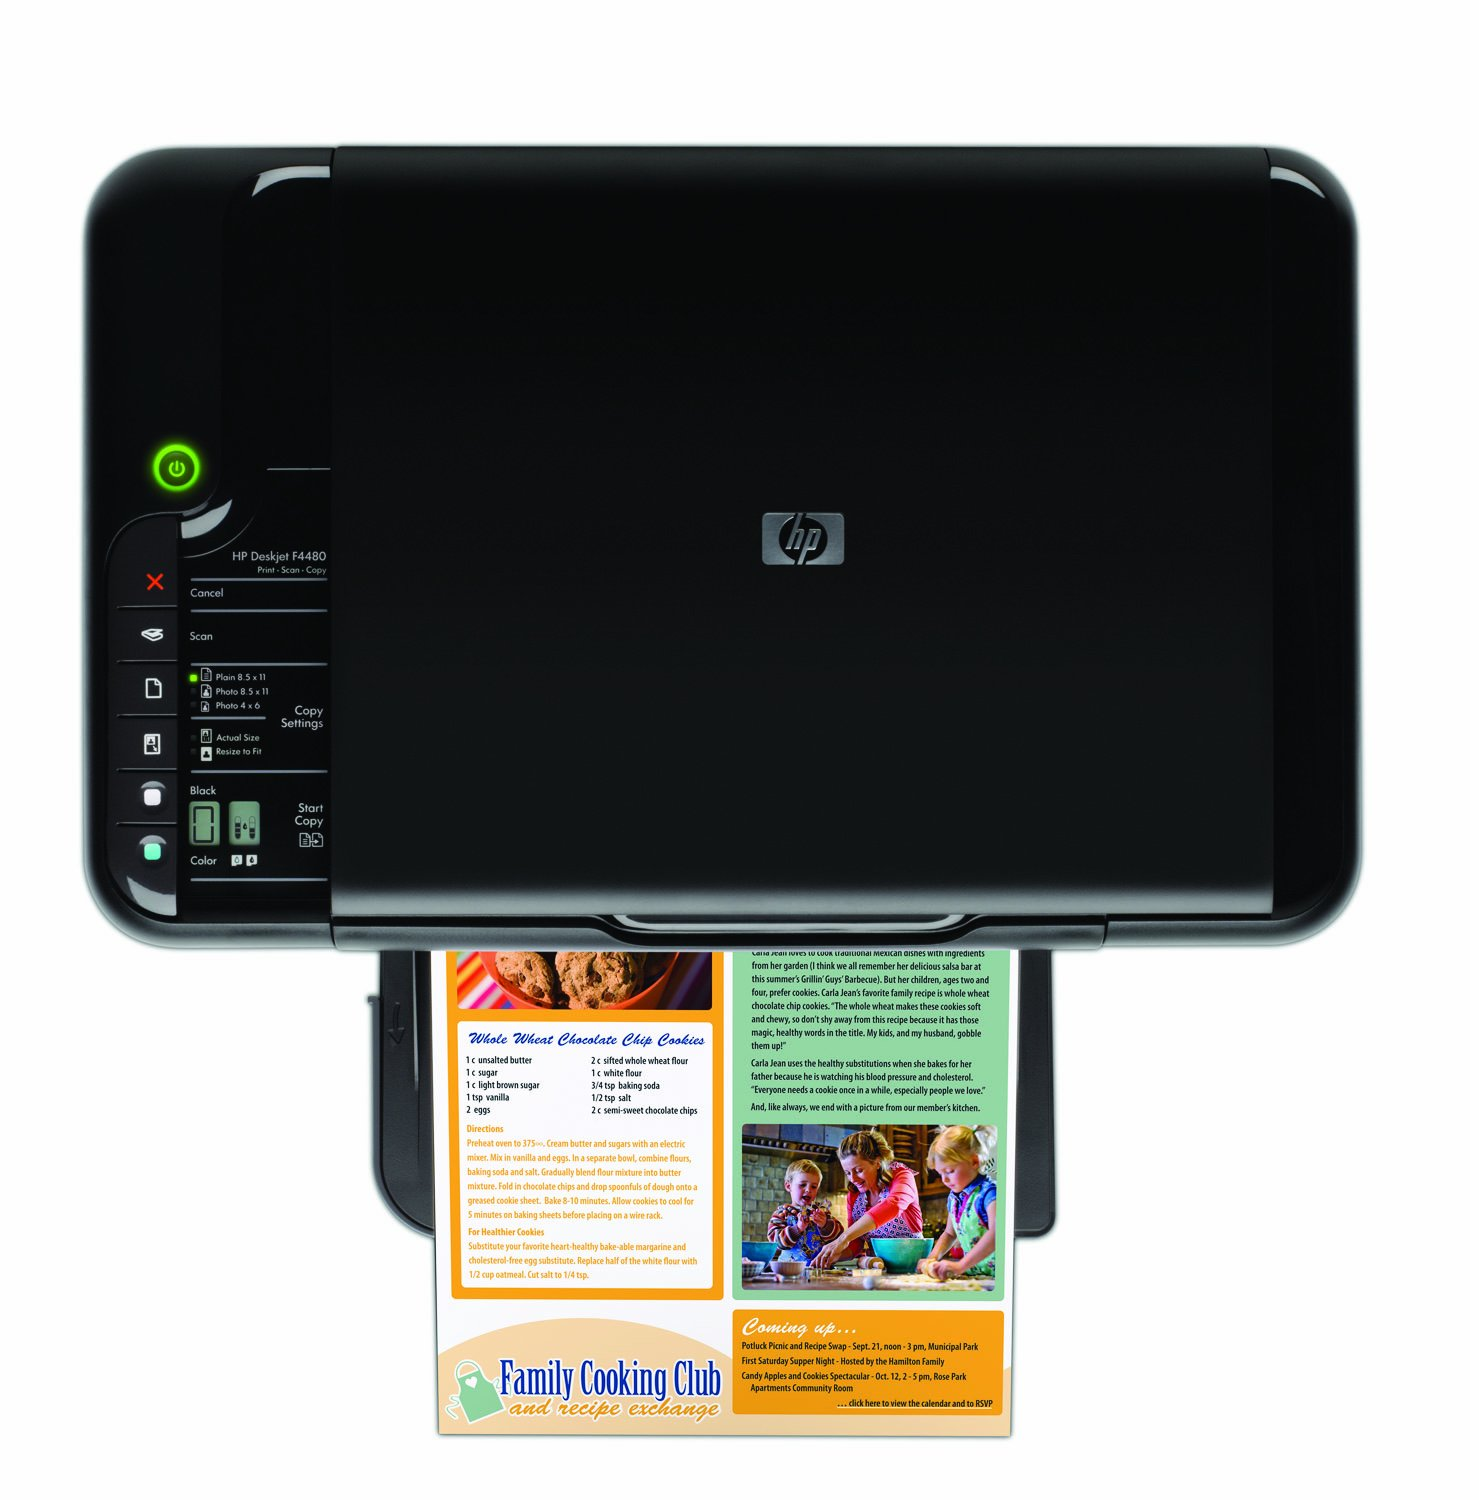 Hp deskjet f4480 all in one impresora de inyeccin de tinta cb745 a hp deskjet f4480 all in one impresora de inyeccin de tinta cb745 a b1h amazon electrnicos fandeluxe